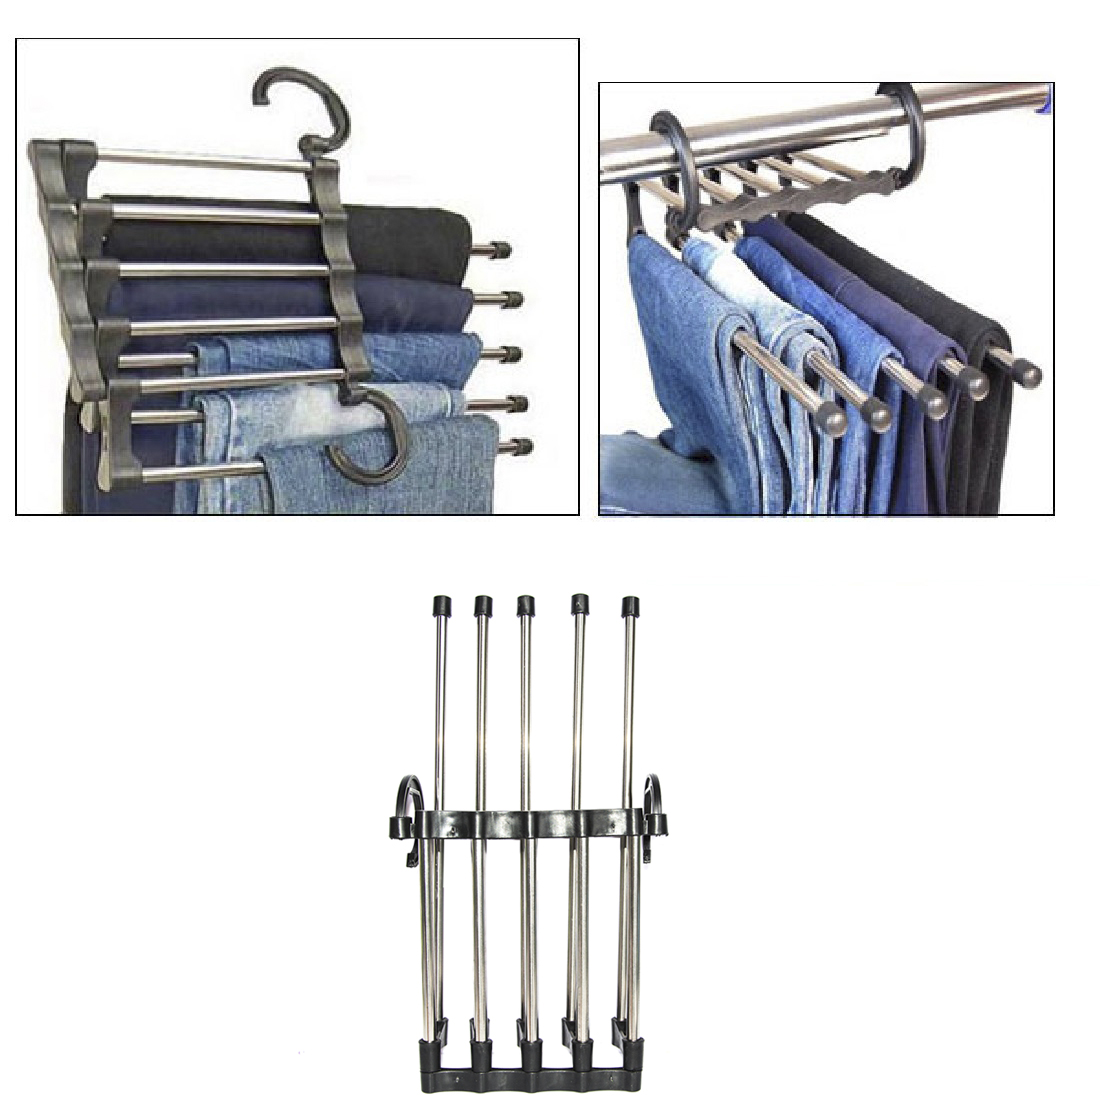 Practical Home Stainless Steel Tube Pants Rack Retractable Magic Clothes Trouser Holder Storage Hanger Home Organizer